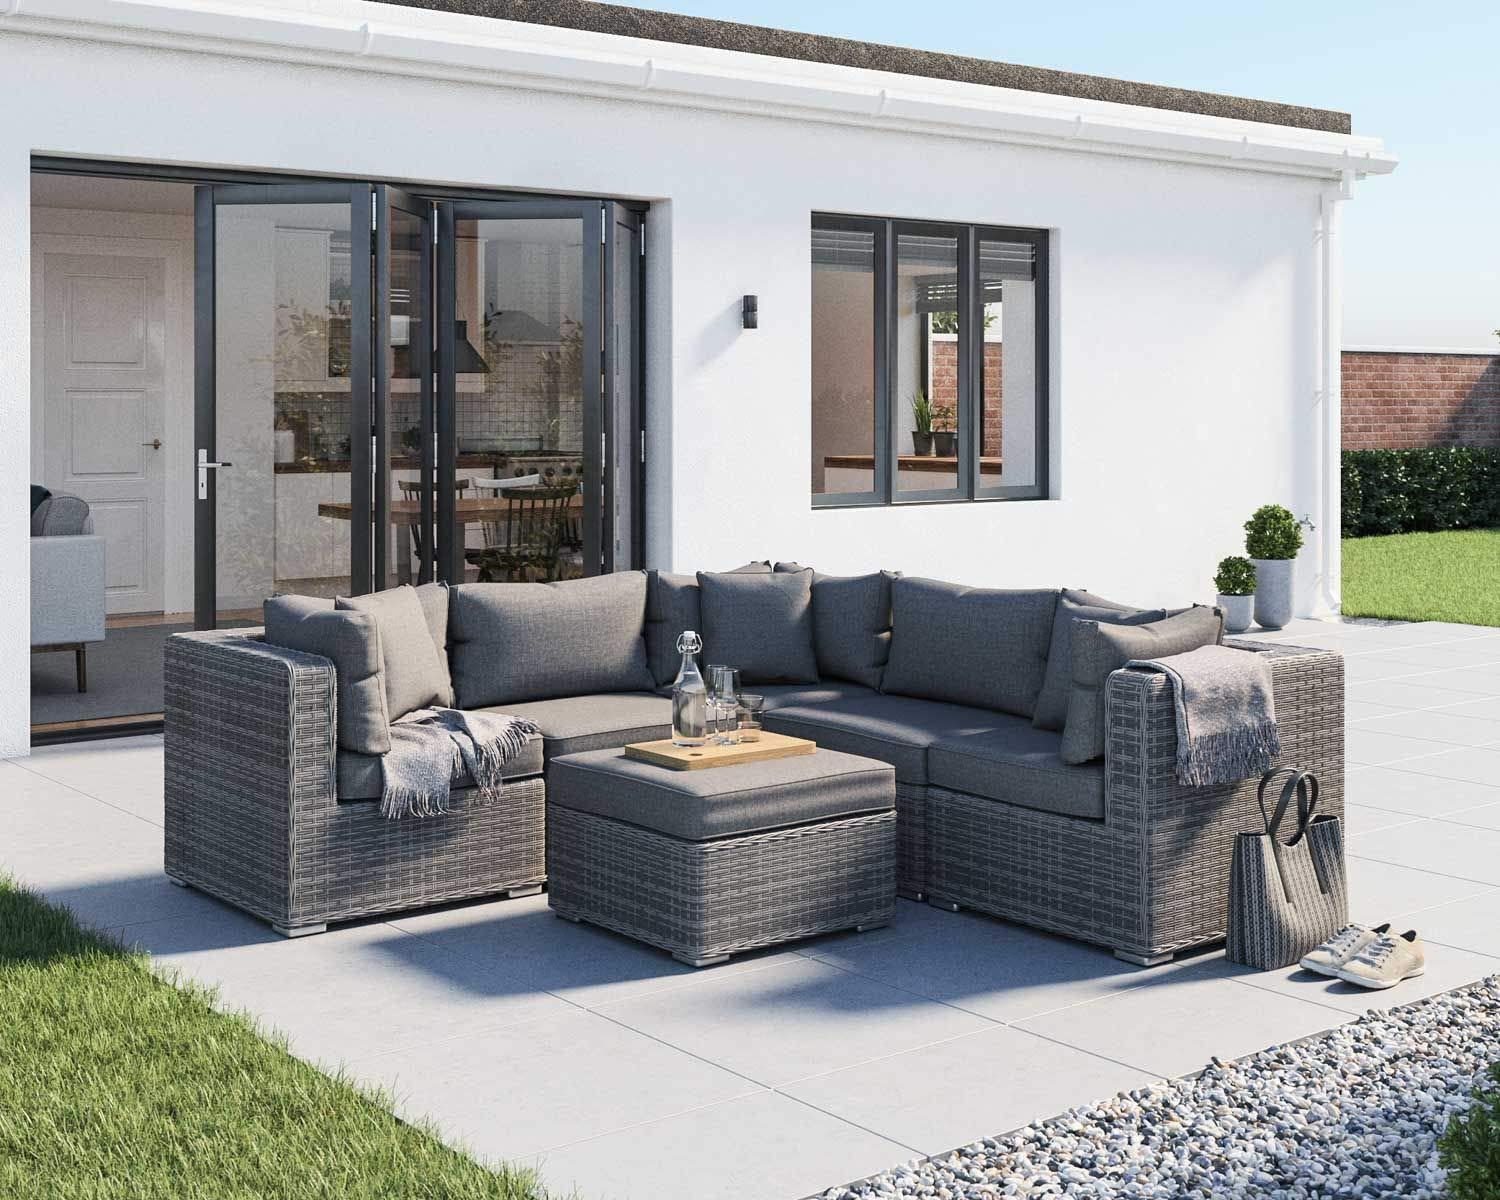 Amazon Com Outdoor Conversation Sets Rattan Patio Furniture Clearance No Assembly Wicker Ottoman Aluminum Outside Sectional Couch Sofa Patio Seating 6pcs Backyard Furniture W Free Waterproof Cover 3toss Pillows Garden Outdoor